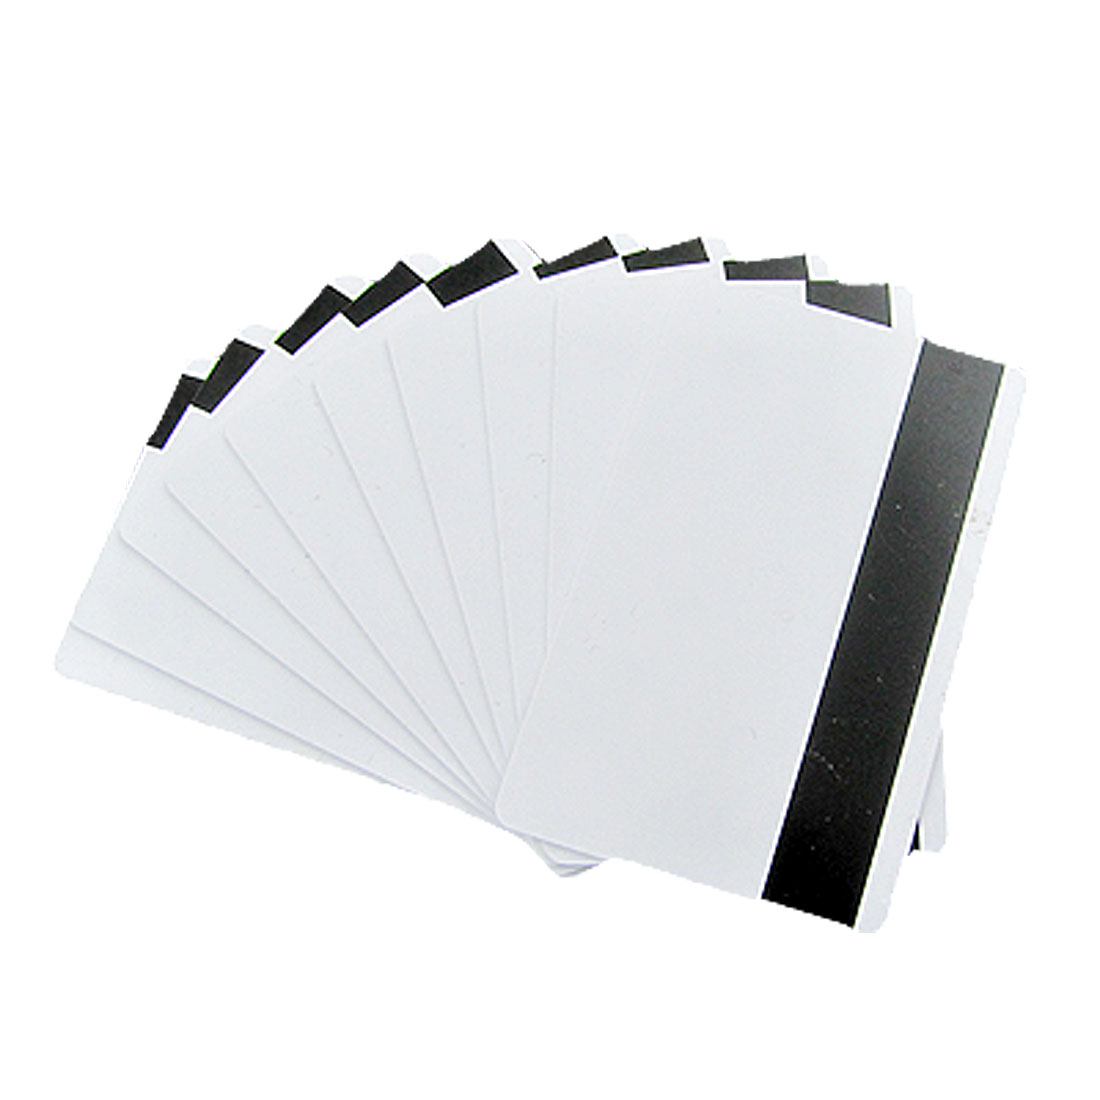 "10 Pcs 3 3/8"" x 2 1/8"" HICO Mag Strip White PVC Cards"